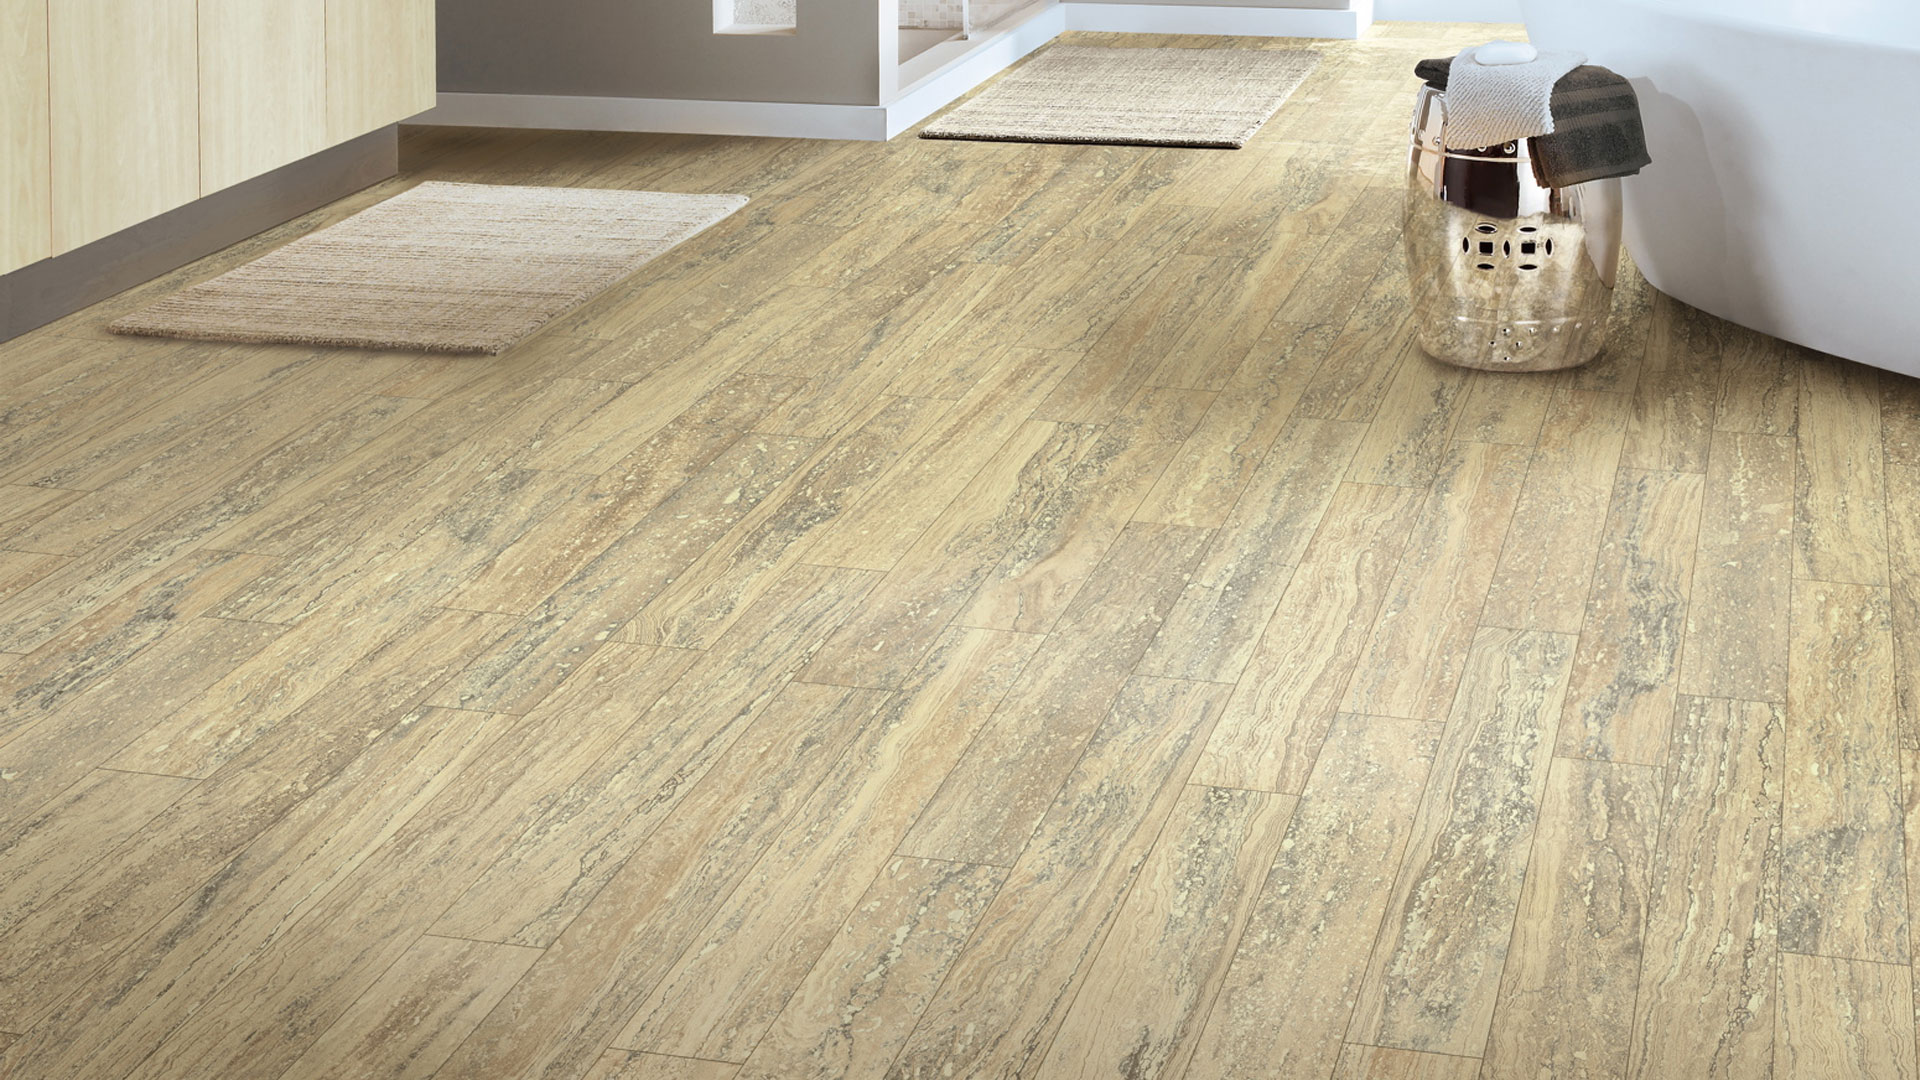 Resilient flooring vinyl sheet floors from armstrong for Sheet vinyl flooring